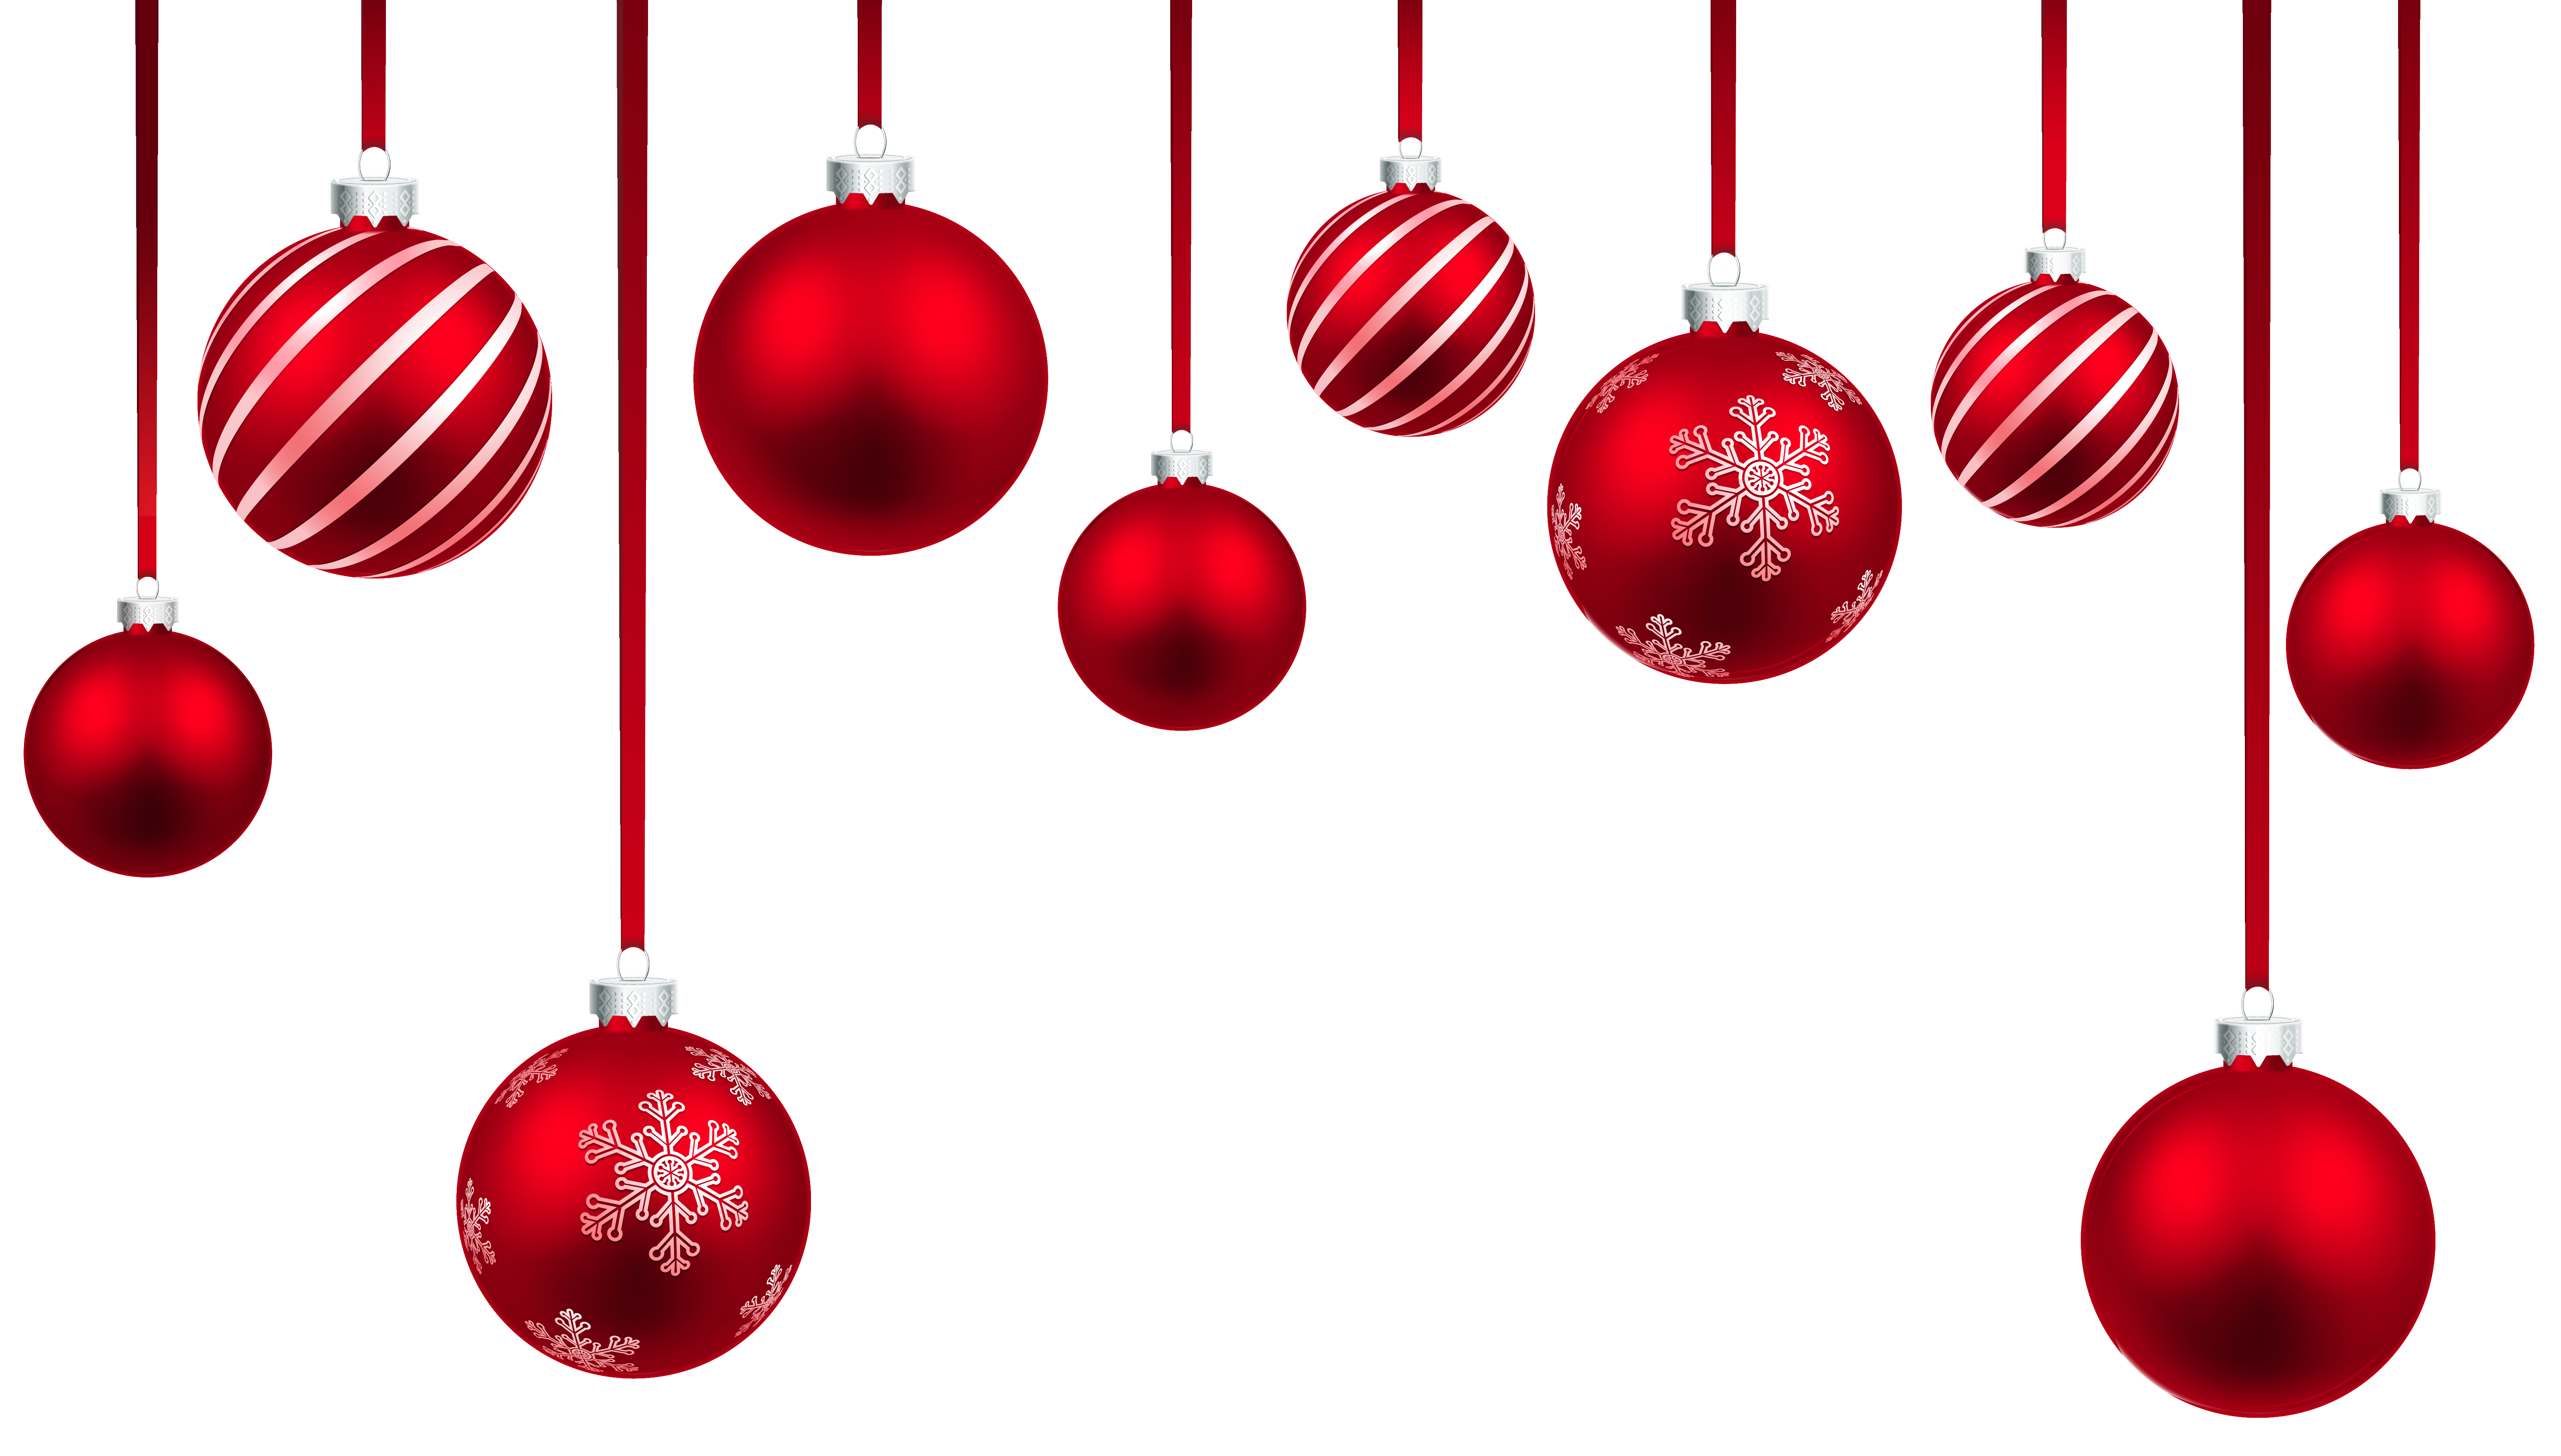 6303x3584 Hanging Christmas Ornaments Clipart Fun For Christmas